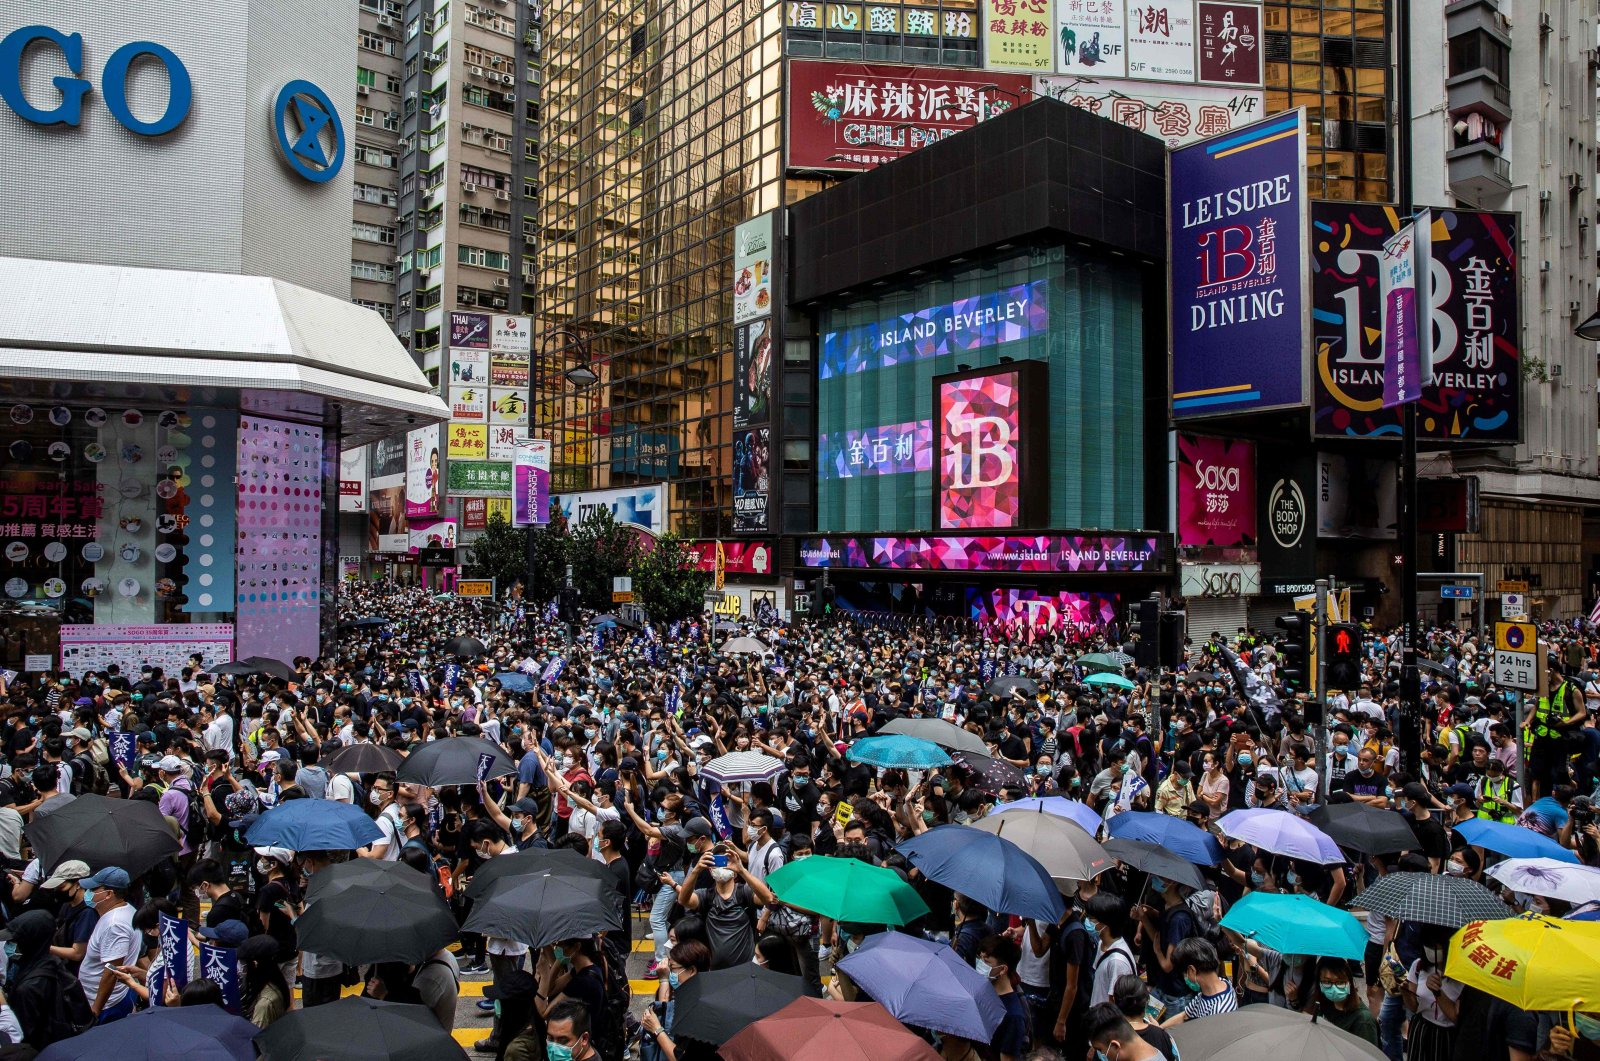 Pro-democracy protesters gather in Causeway Bay district of Hong Kong on May 24, 2020, ahead of planned protests against a proposal to enact new security legislation in Hong Kong. (AFP Photo)